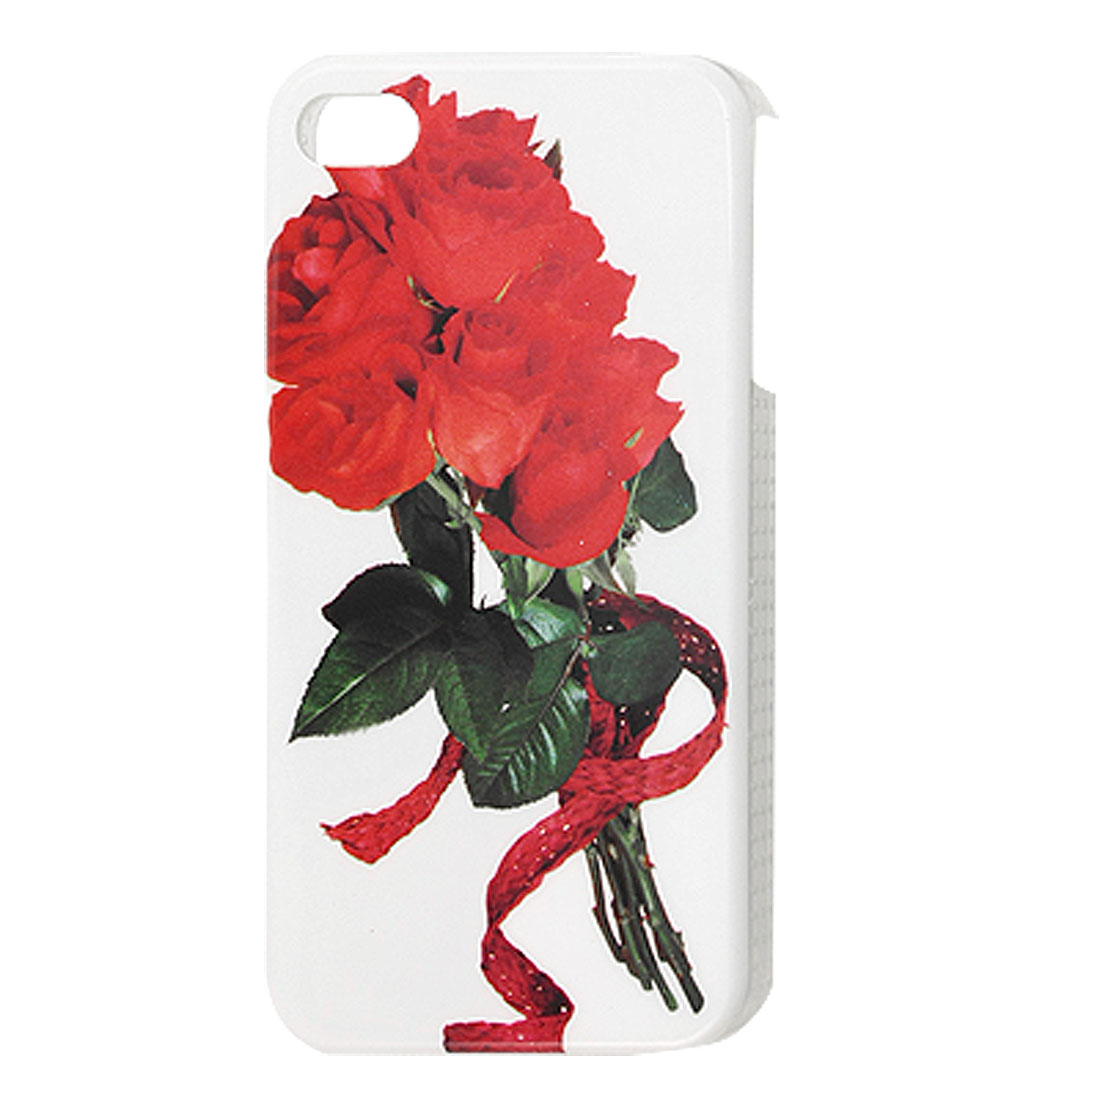 Red Rose Pattern Hard Plastic IMD Back Cover Case for iPhone 4 4G 4S